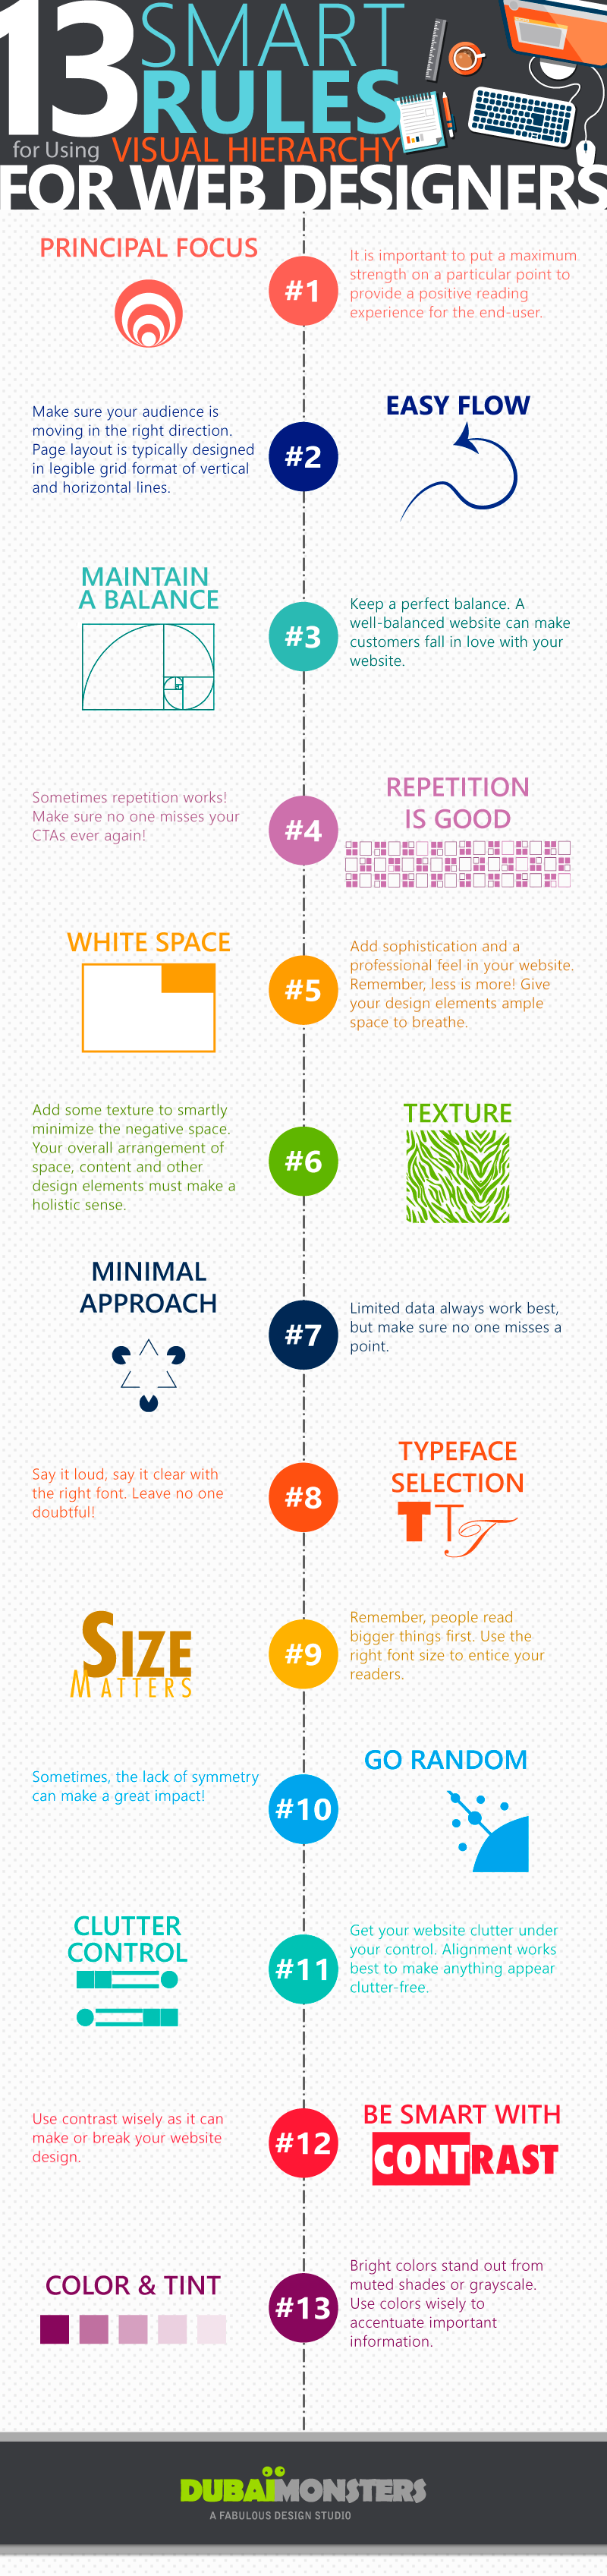 13 Smart Rules for Using Visual Hierarchy for Web Designers